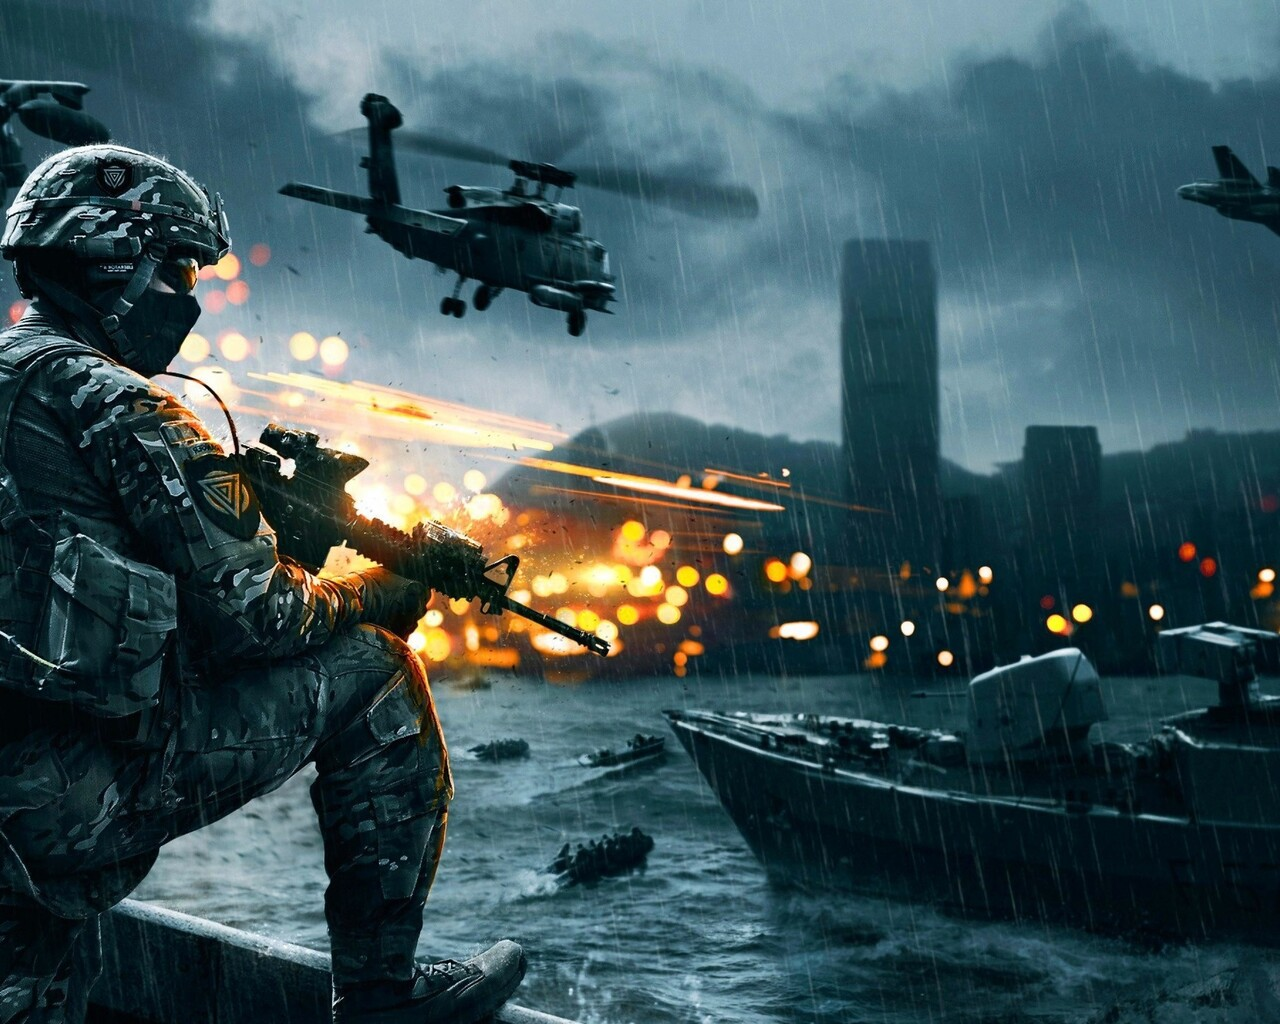 Download Wallpaper 1280x1280 Battlefield 4 Game Ea: 1280x1024 Battlefield 4 1280x1024 Resolution HD 4k